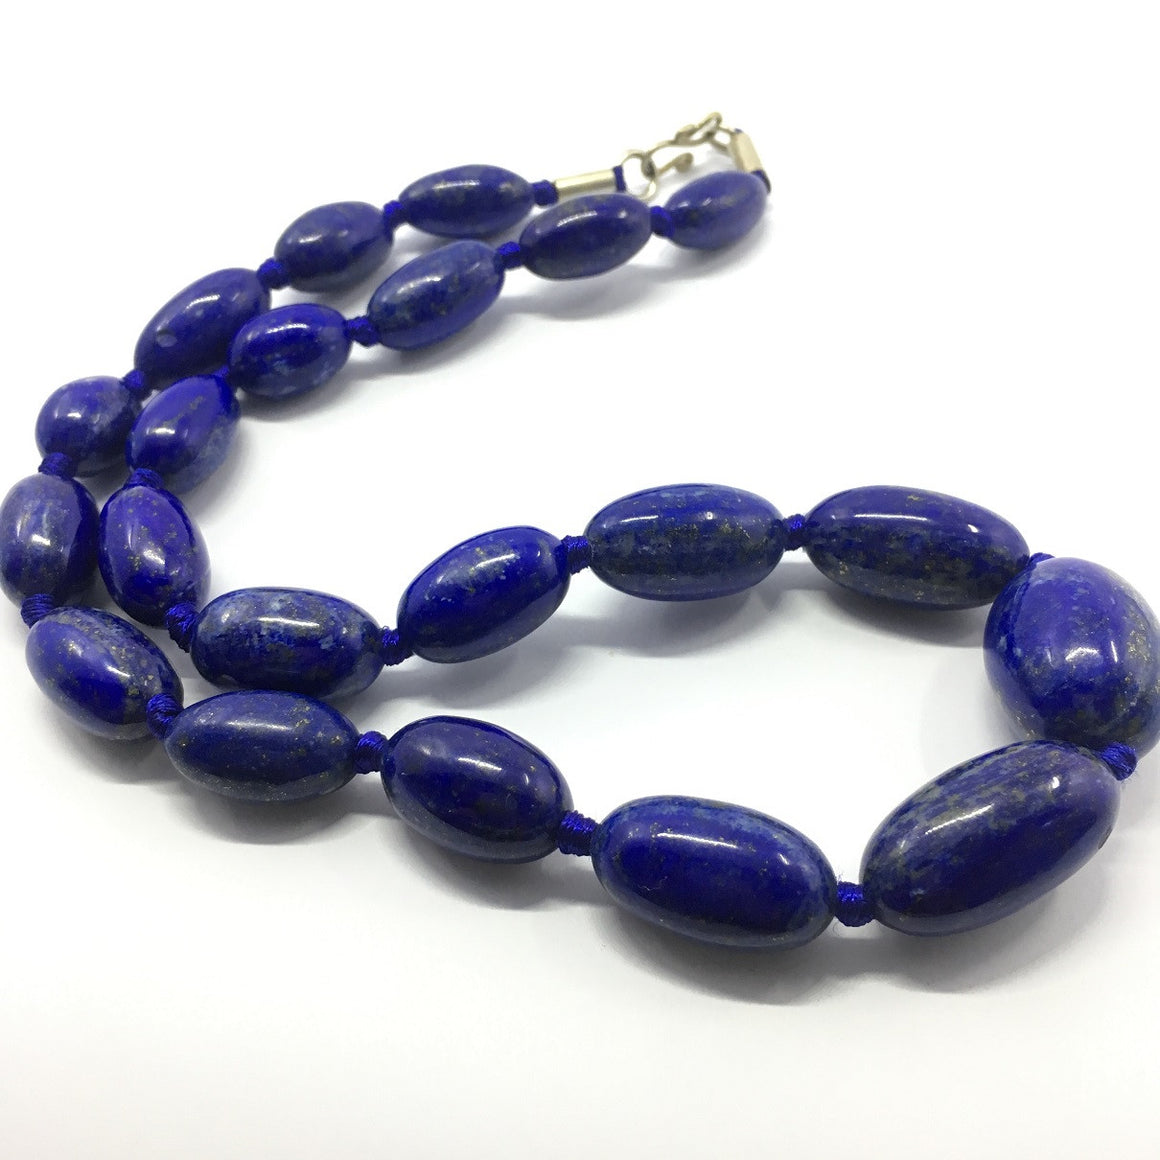 Lapis Lazuli Necklace - Lapis Necklace 21 Oval Beads - 476.0 ct